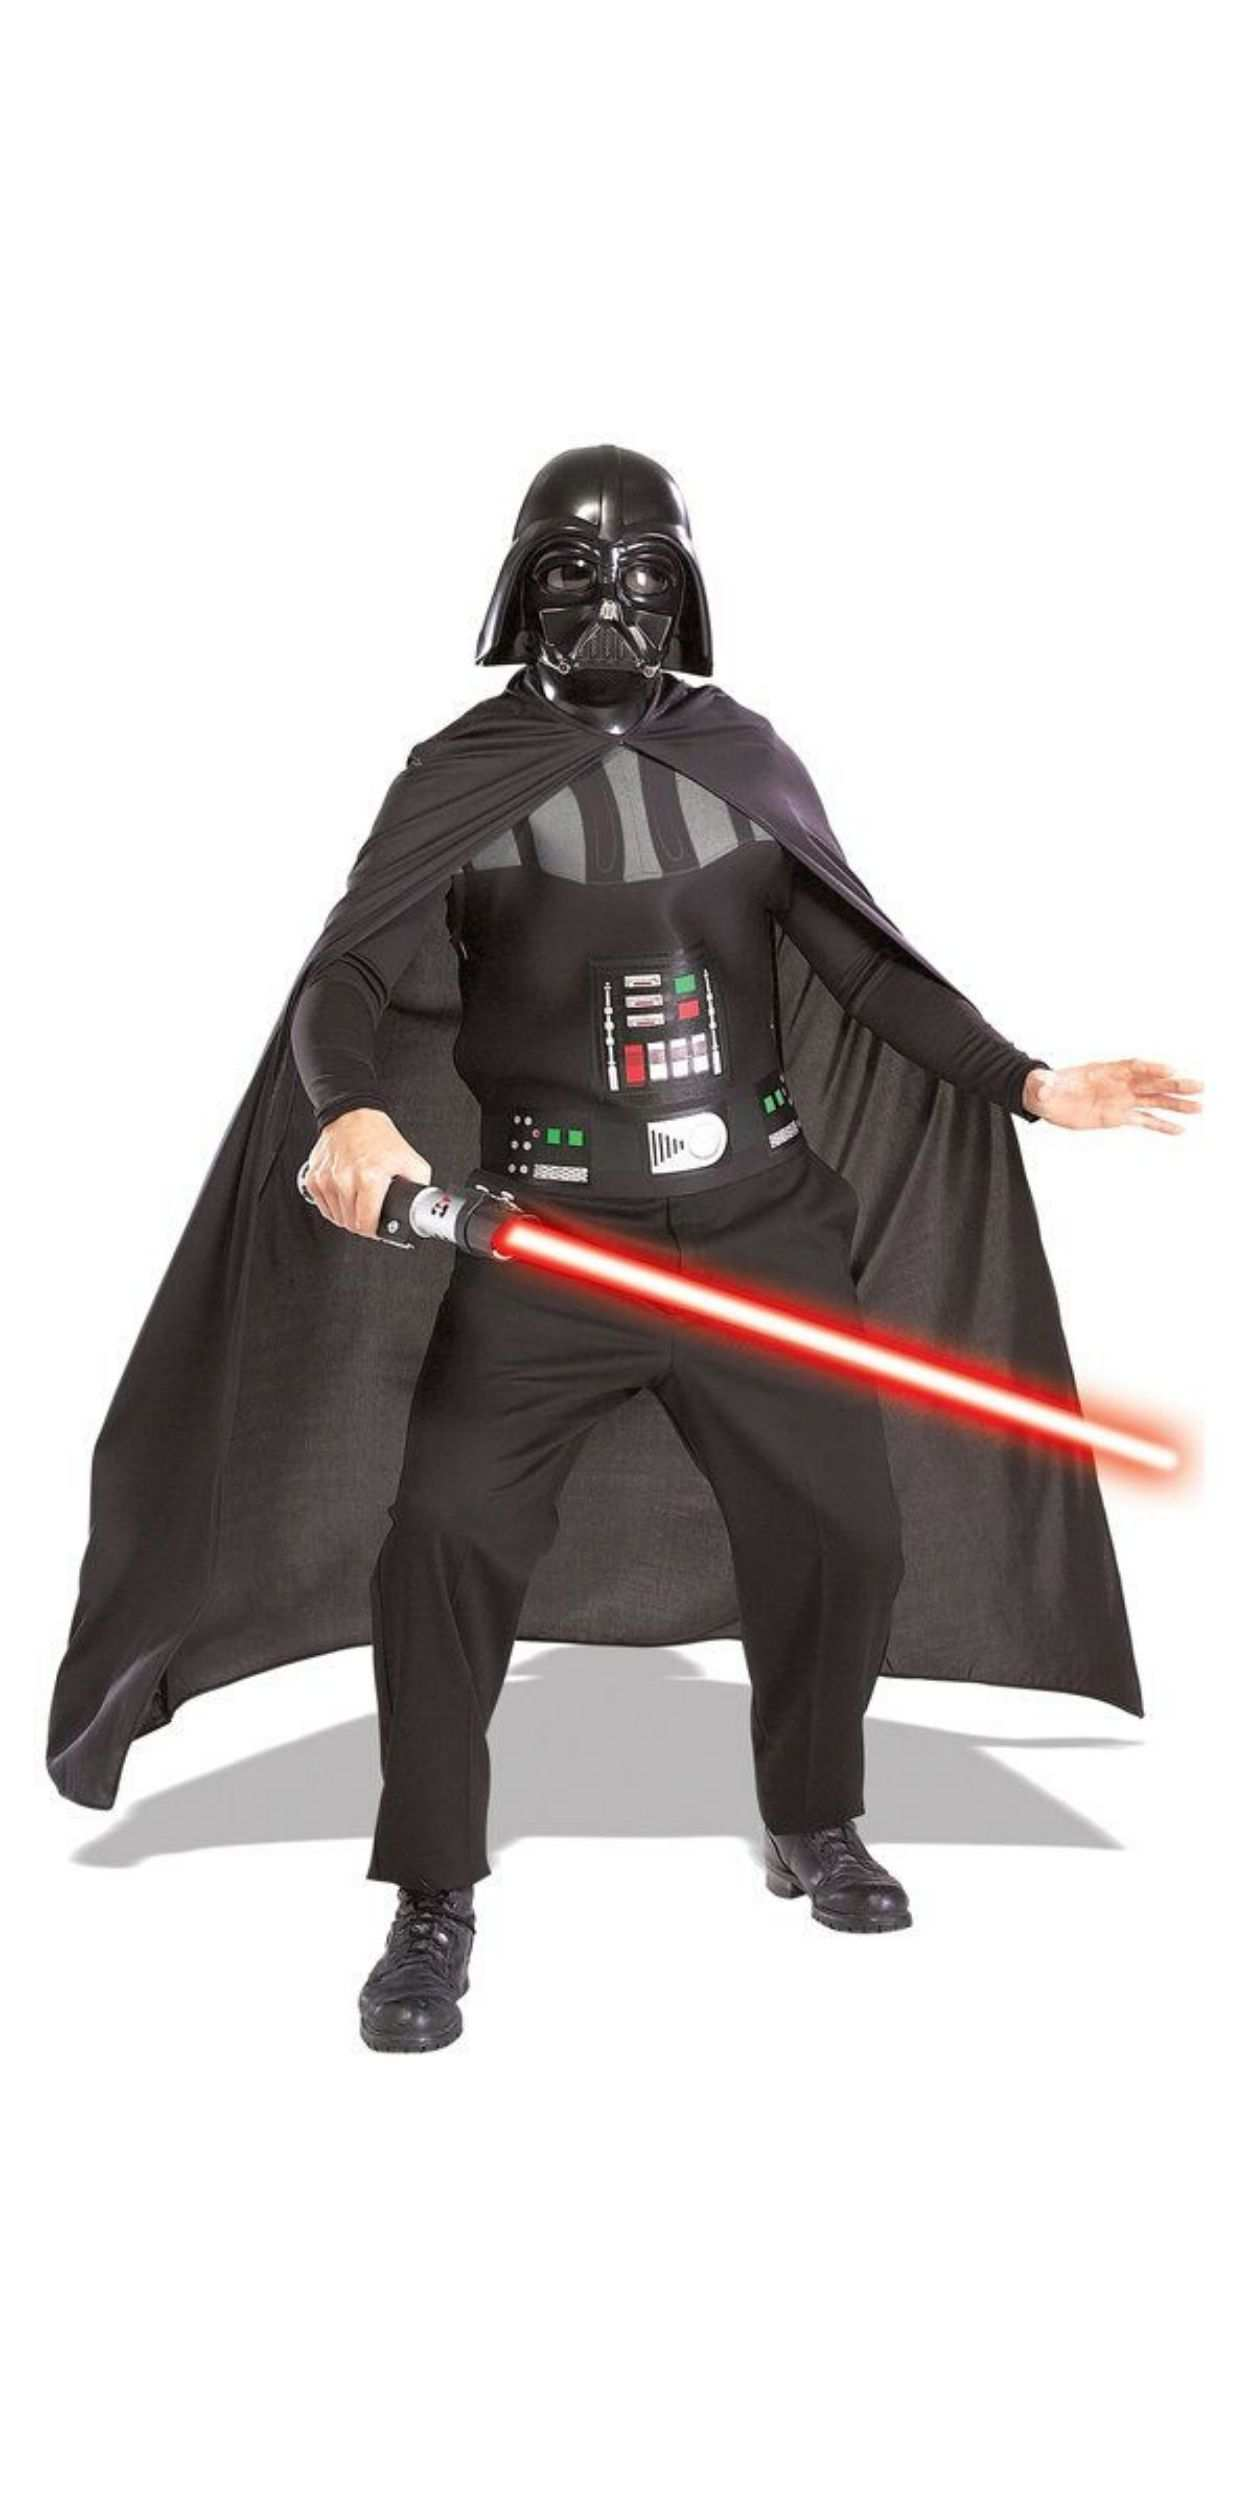 Man in Darth Vader Party Costume